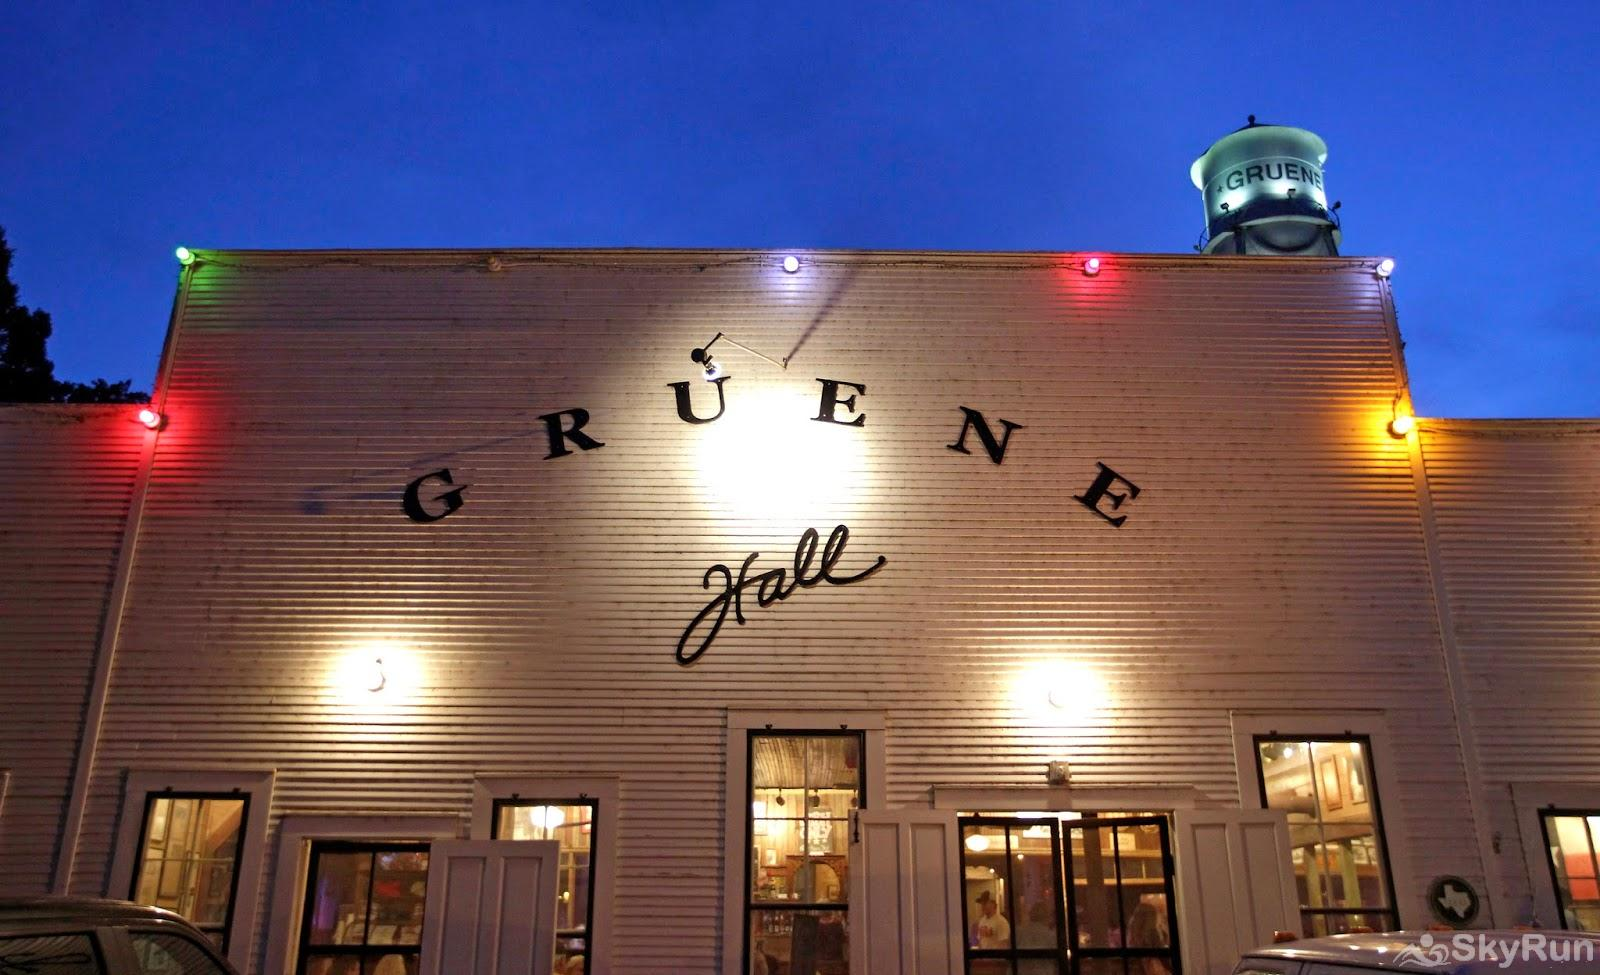 WATERFRONT GRACE Gruene Hall in nearby New Braunfels